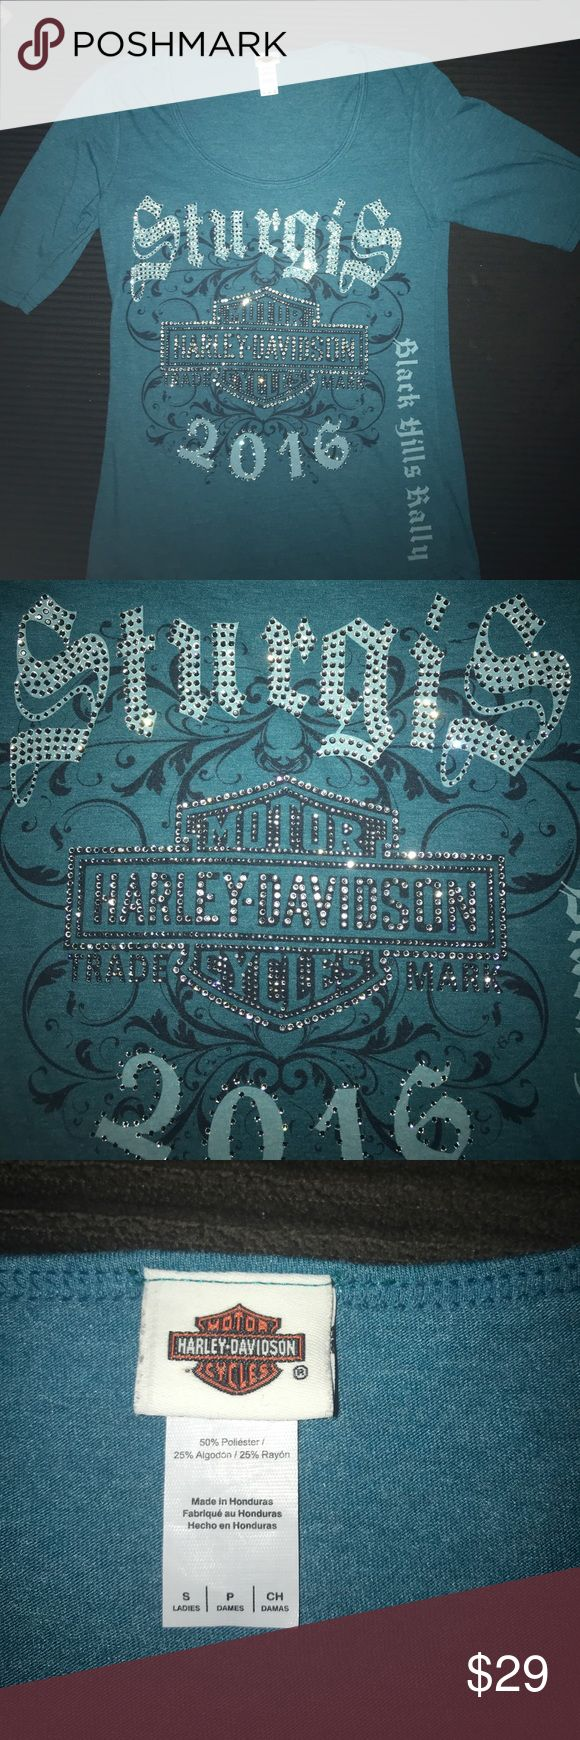 H-D GORGEOUS TEAL ALL BLING STURGIS 2016 H-D GORGEOUS TEAL ALL BLING FRONT STURGIS 2016 1/4 INCH SLEEVES ... MINT CONDITION Harley-Davidson Tops